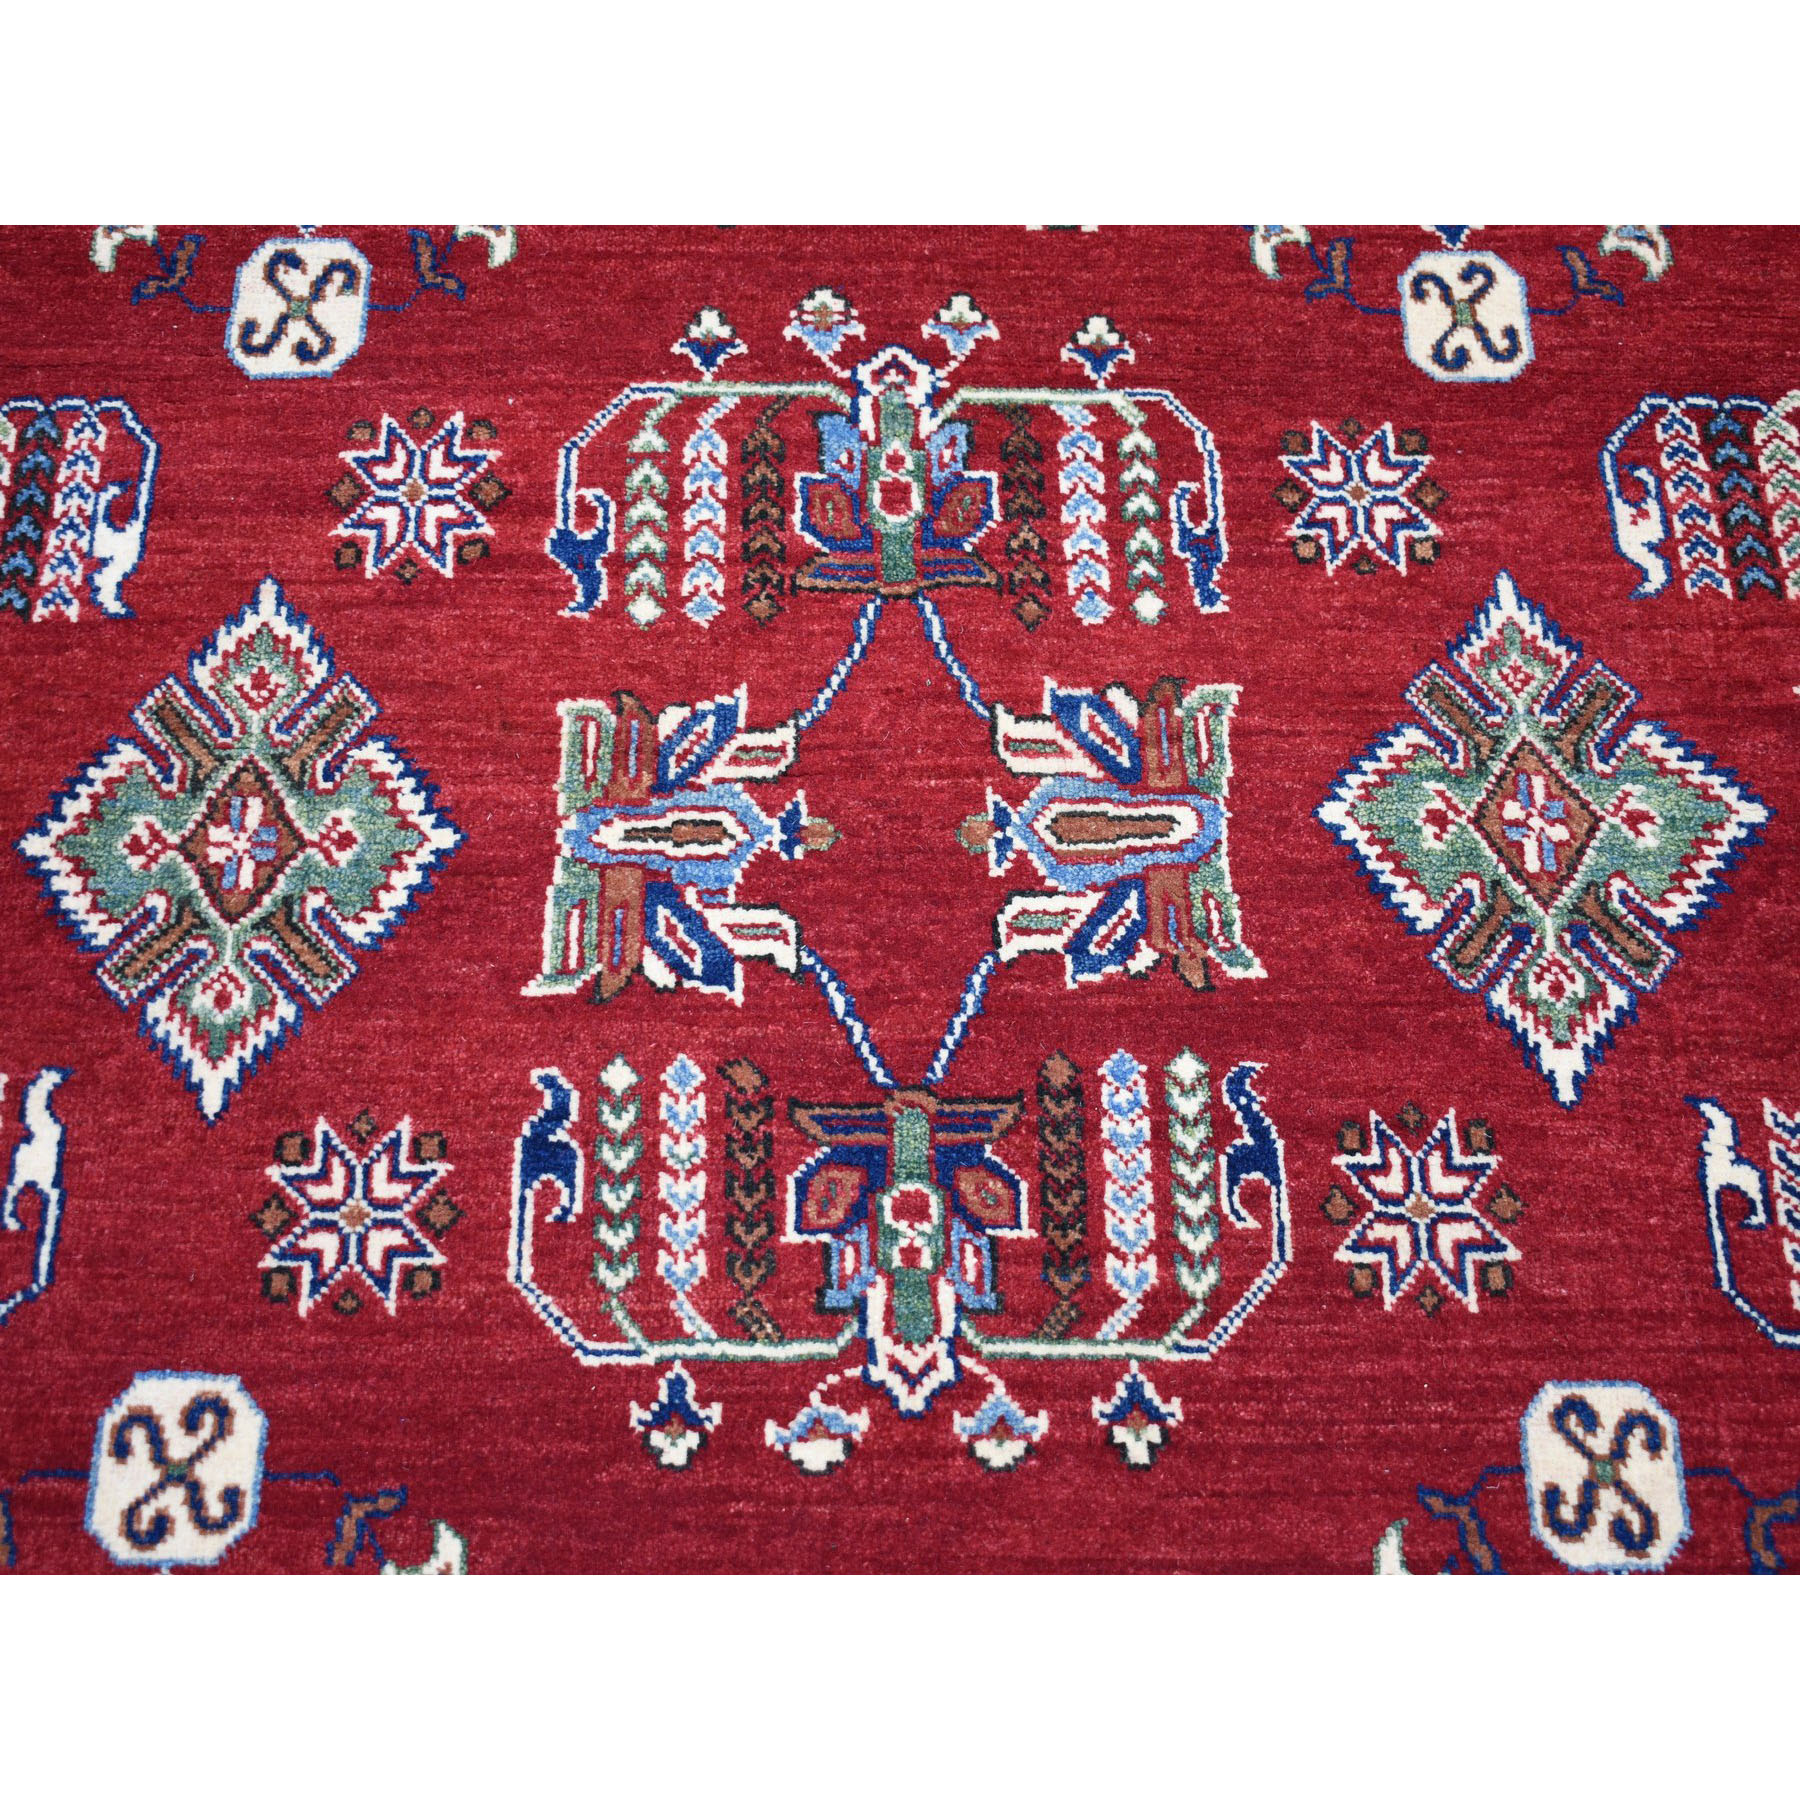 "6'x8'10"" Red Geometric Design Kazak Pure Wool Hand-Knotted Oriental Rug"